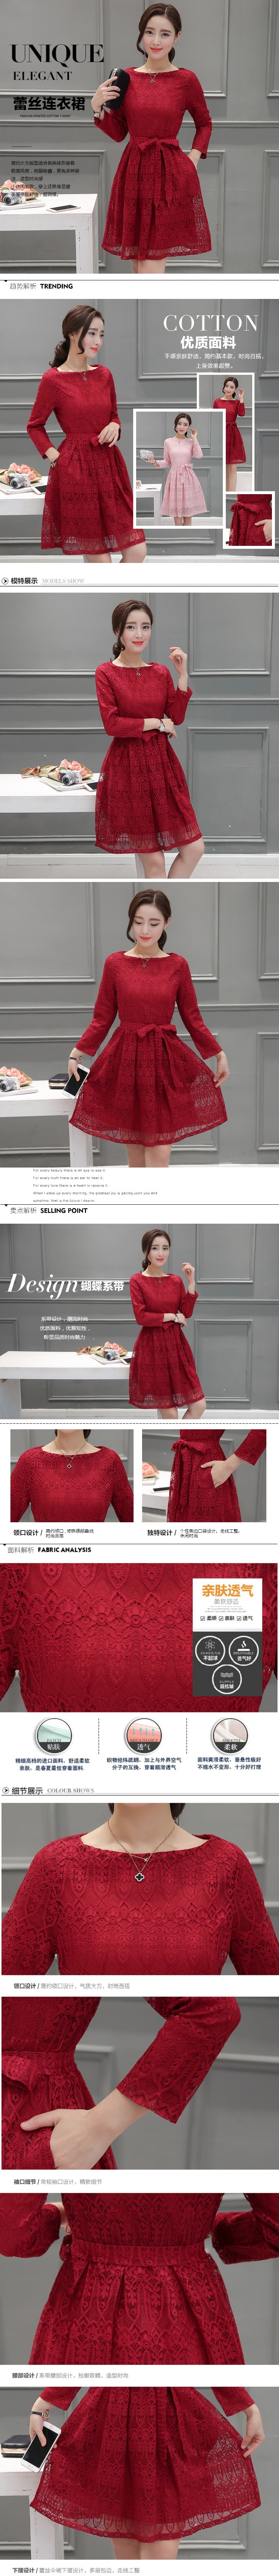 cea0c3f4fe1 1 x Korean Long-sleeved Lace Red Dress